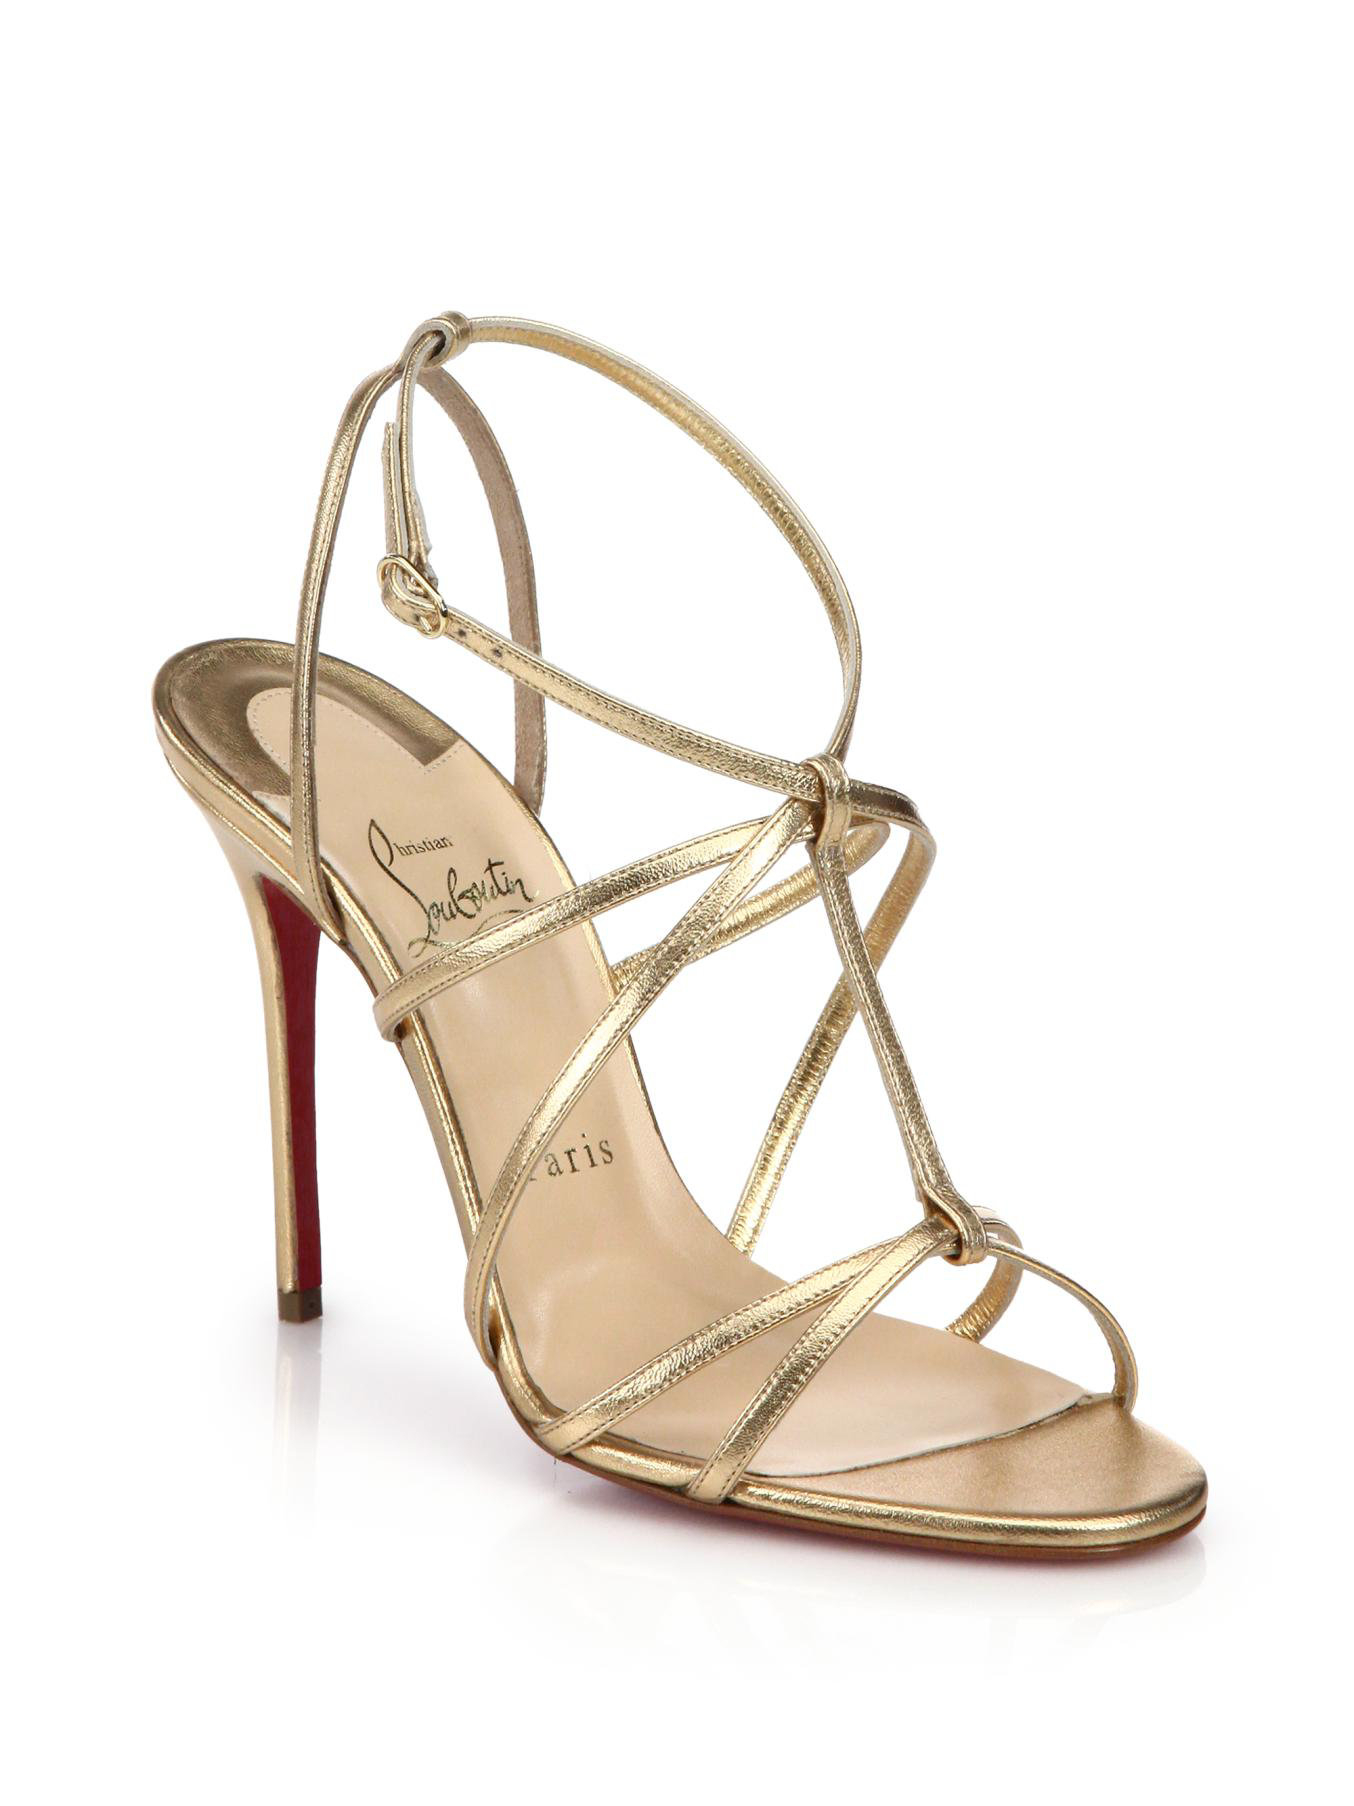 christian louboutin black and gold sandals